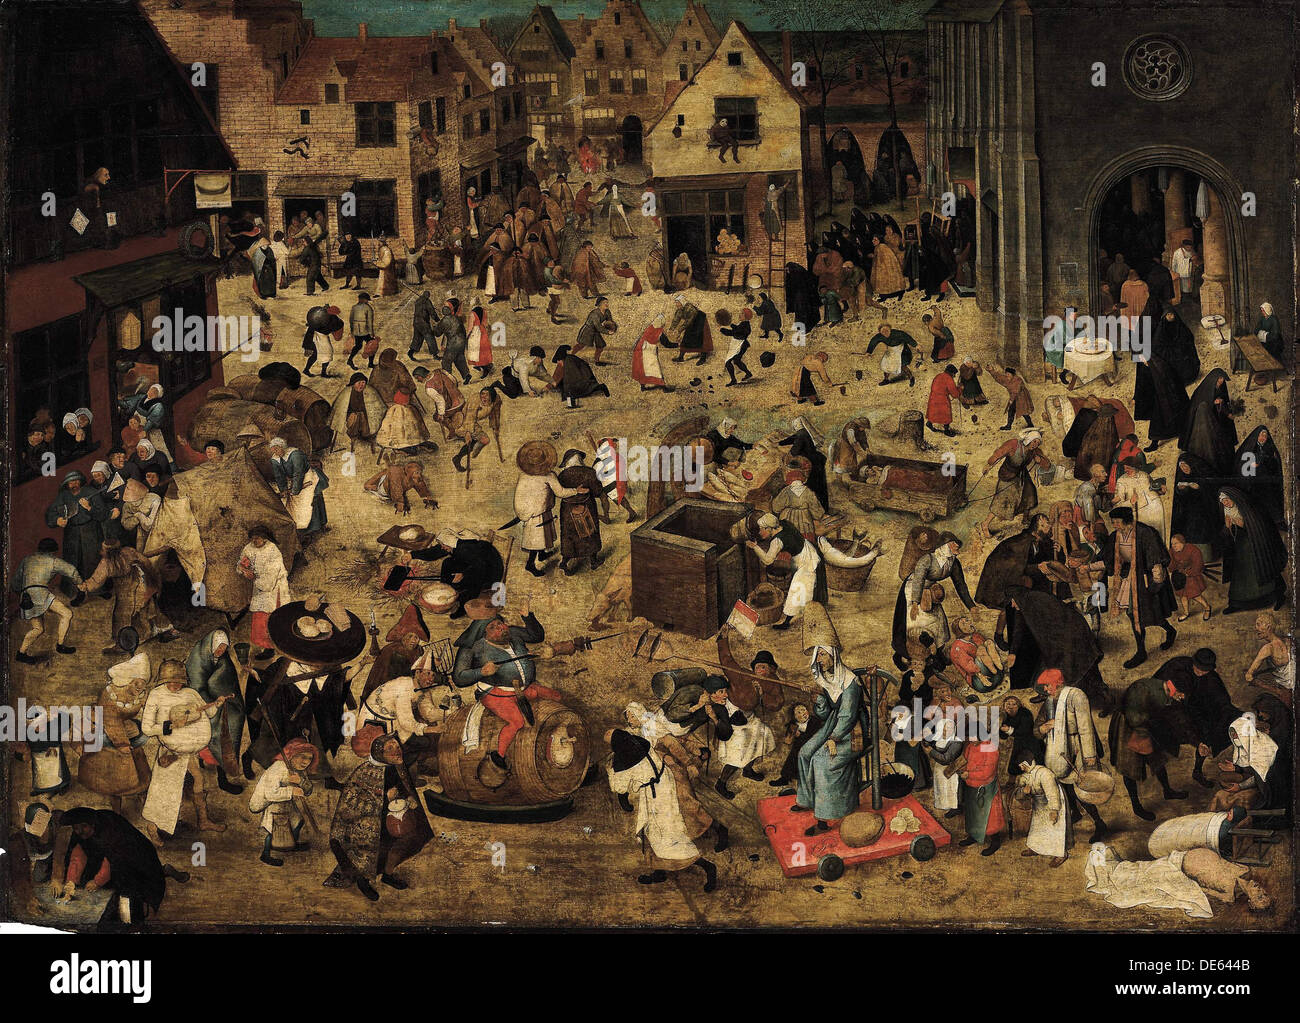 The Combat between Carnival and Lent, c. 1560. Artist: Brueghel, Pieter, the Younger (1564-1638) - Stock Image